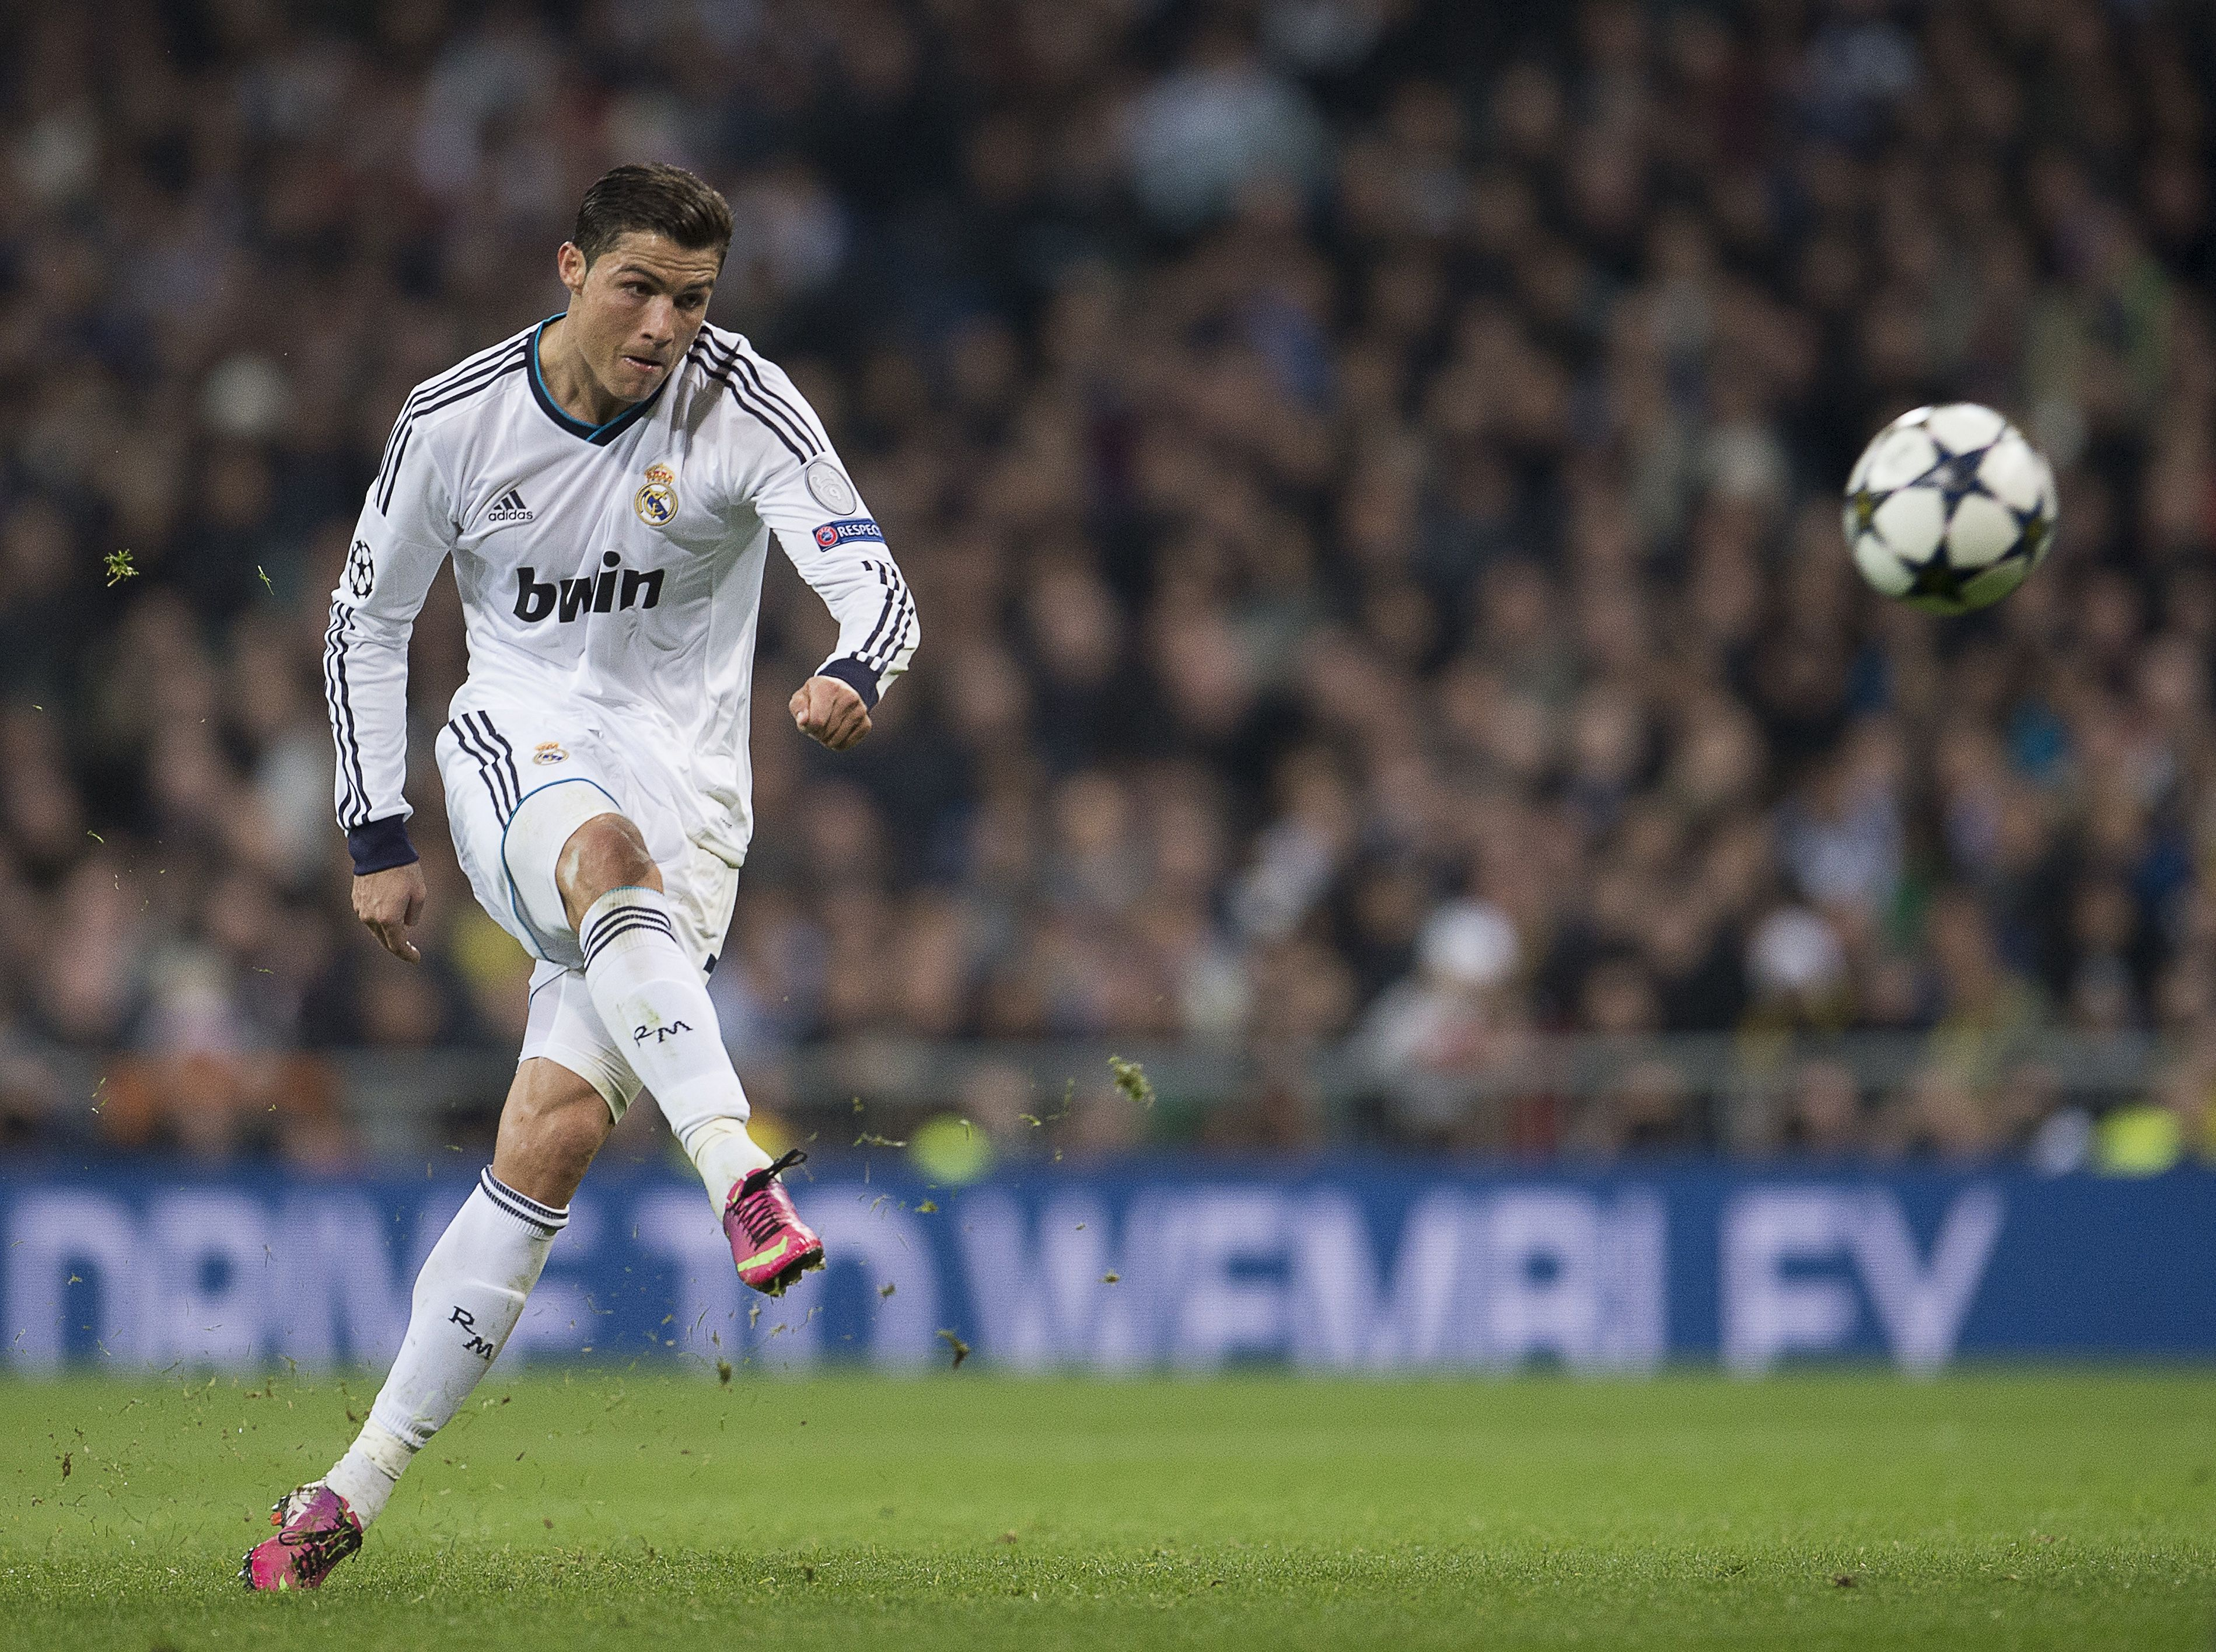 Cr7 The Player That Has Everything Ronaldo Free Kick Cristiano Ronaldo Free Kick Cristiano Ronaldo